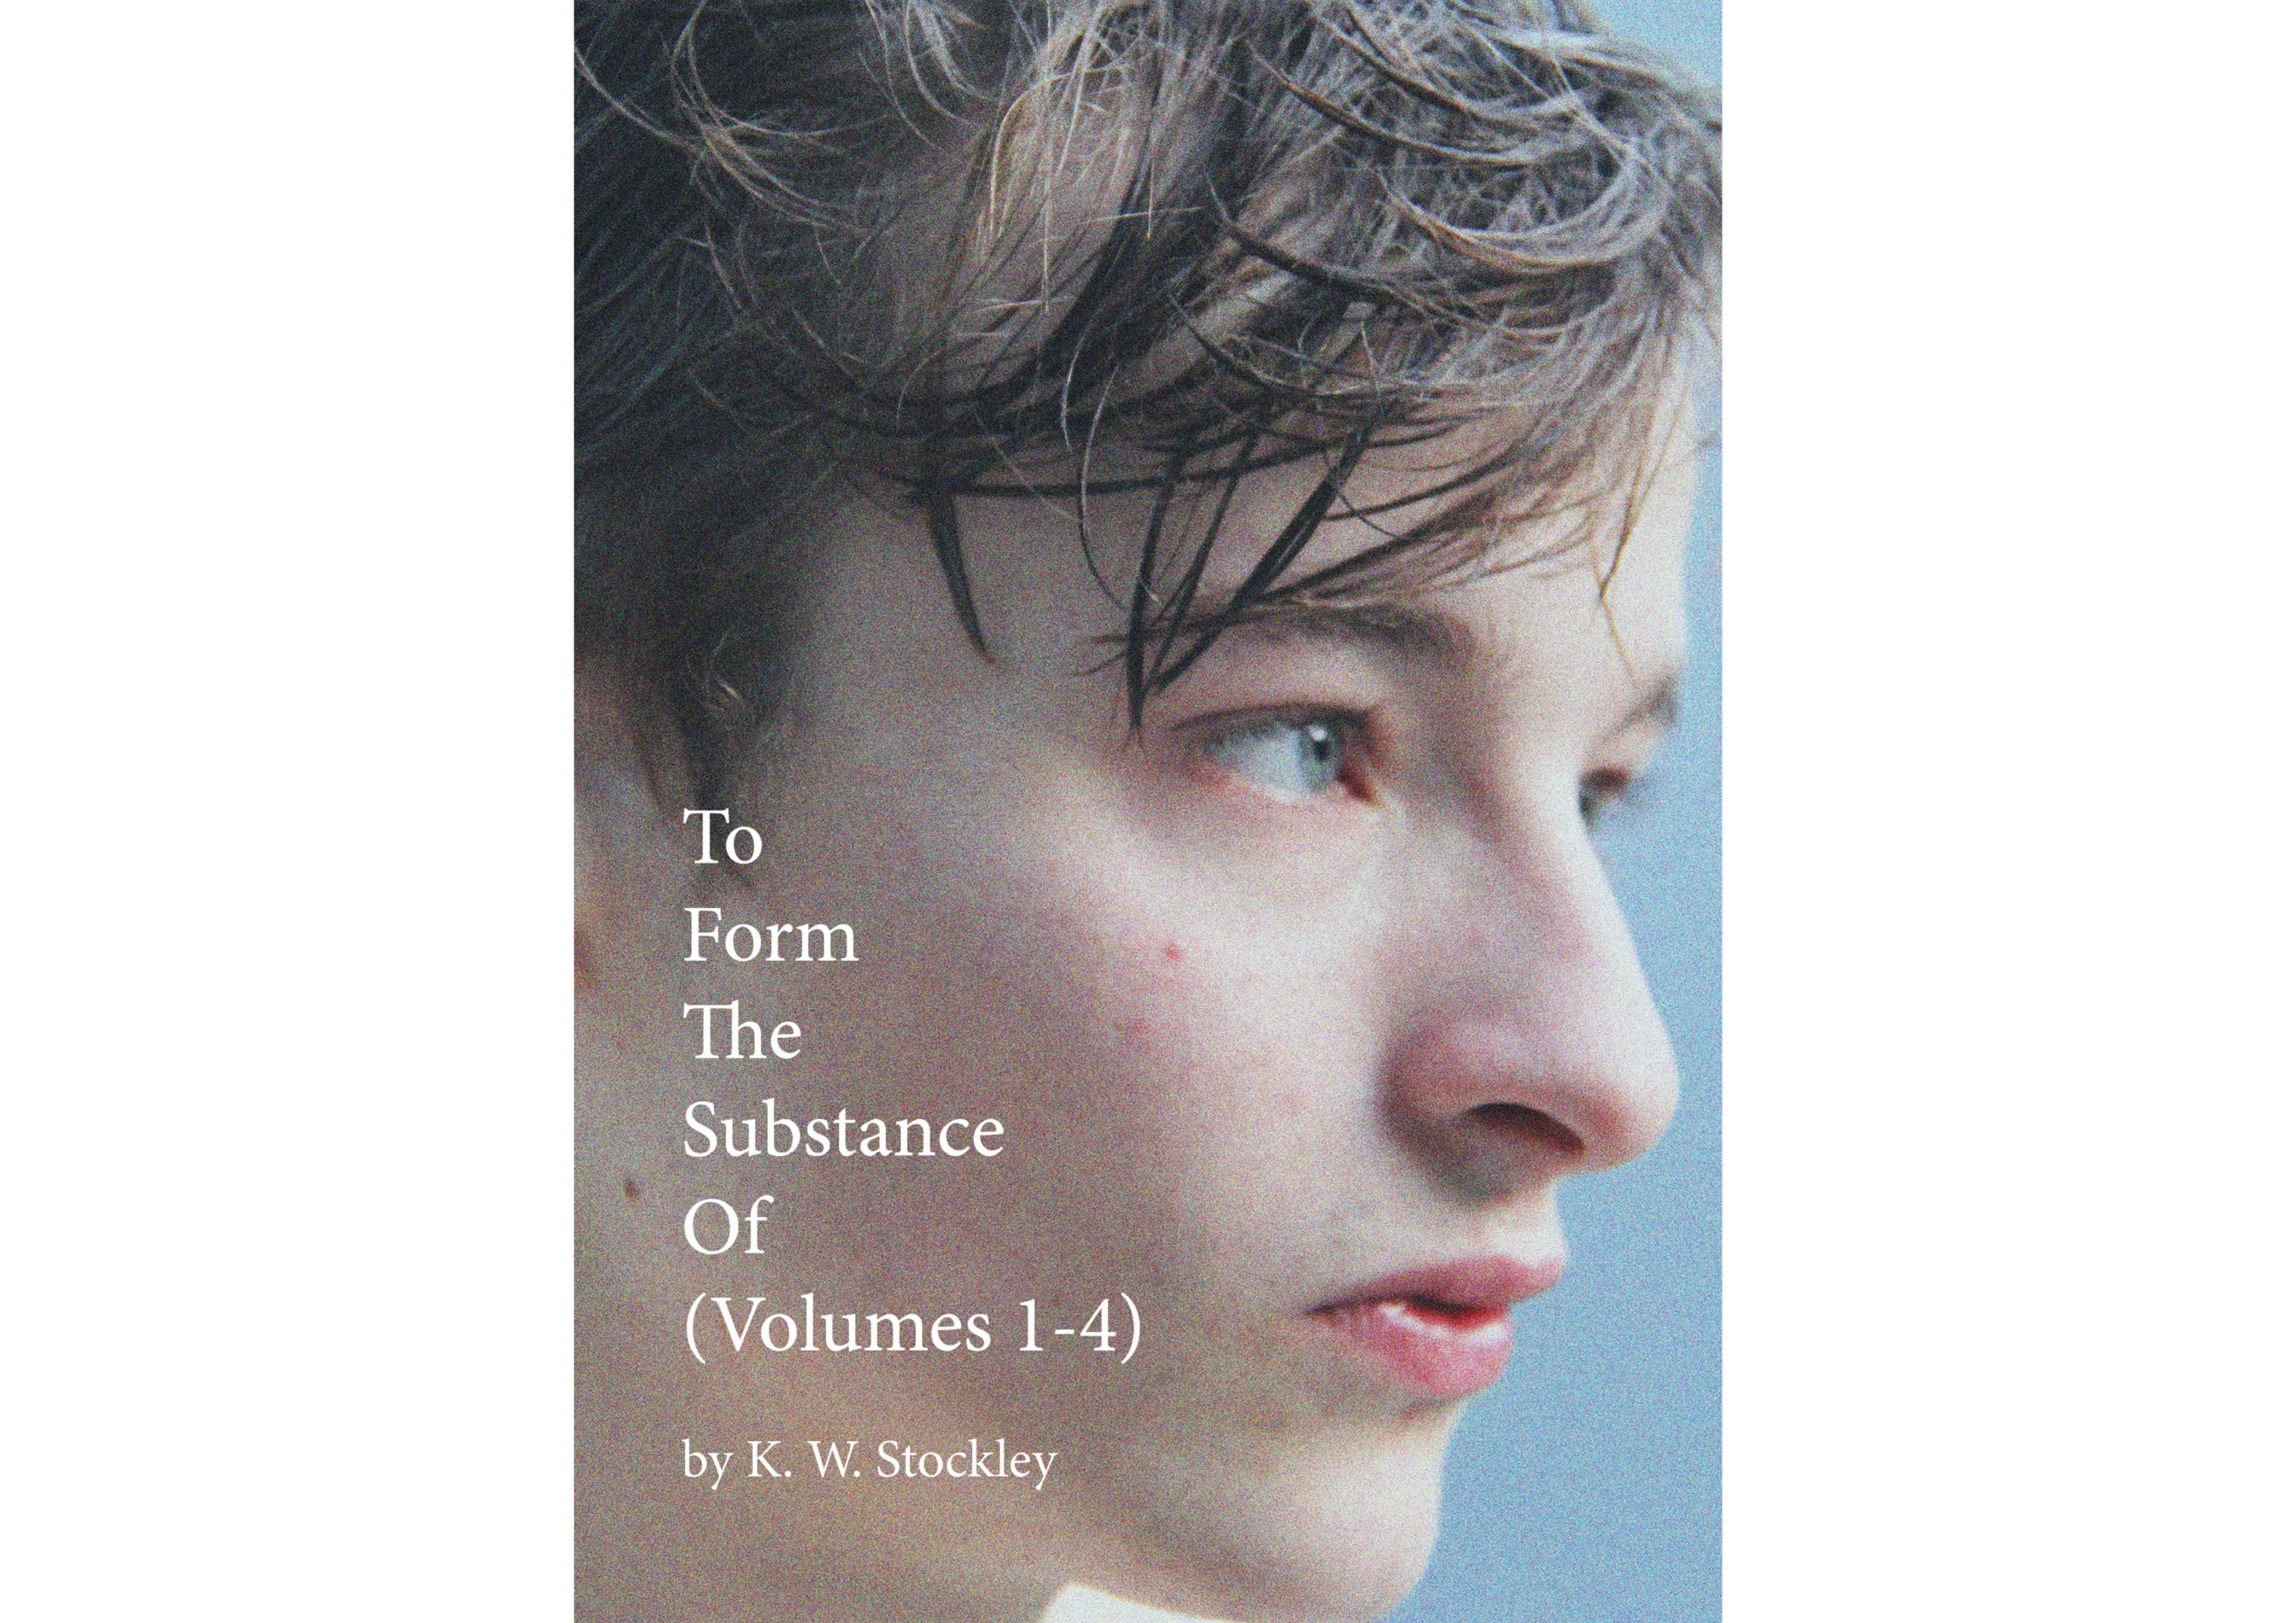 To Form The Substance Of Volumes 1-4 (Hardback Edition)